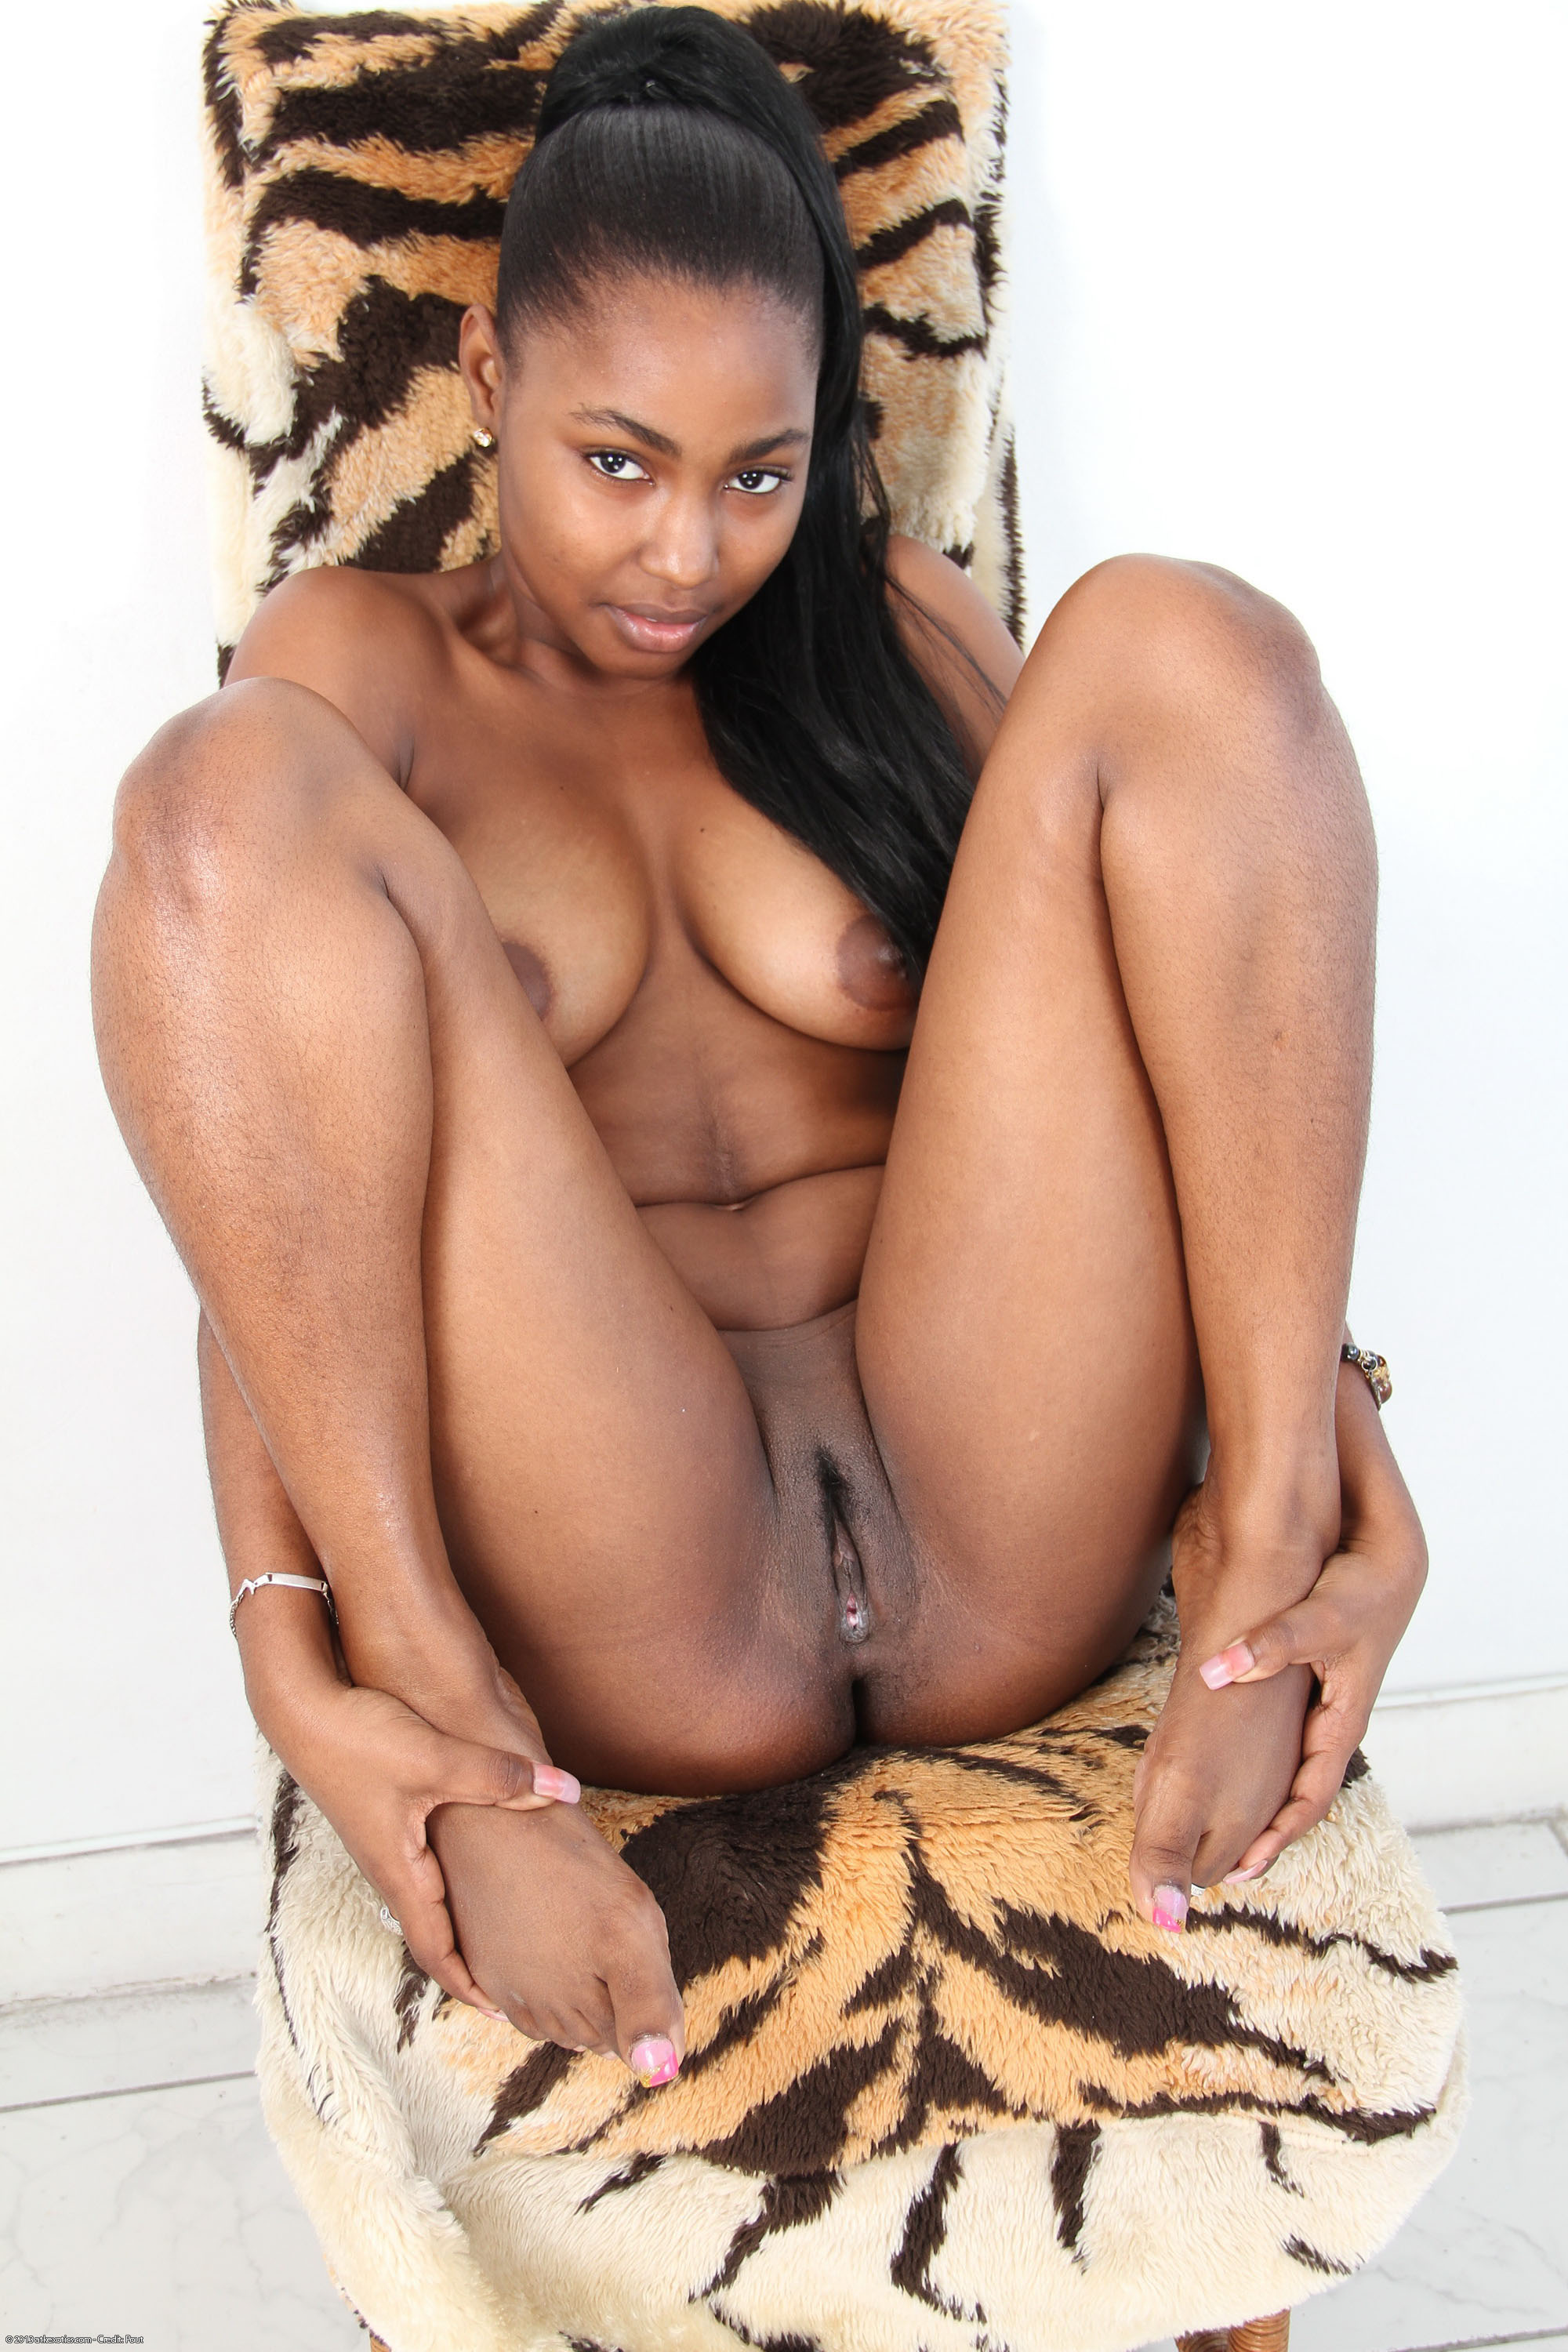 Apologise, but, big black girl sweet pussy nice idea